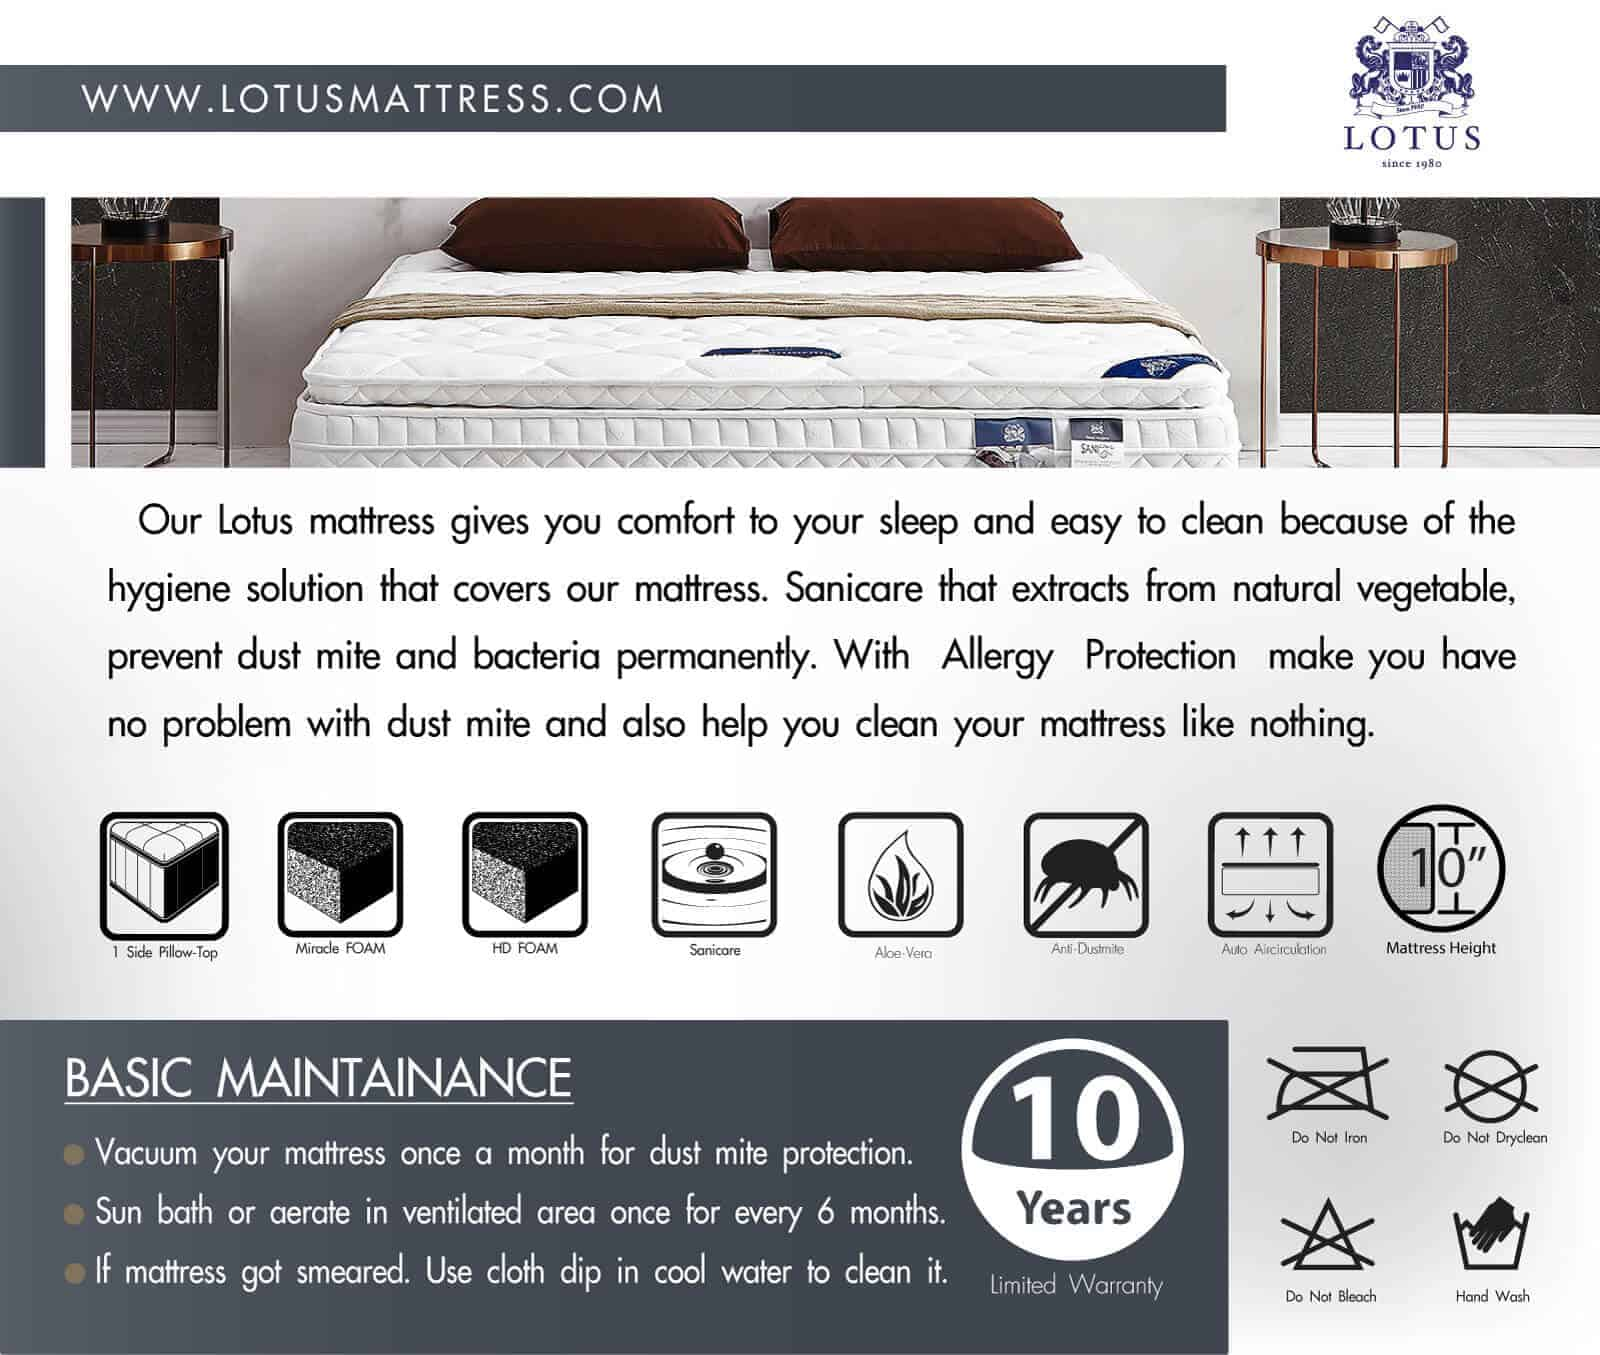 Lotus Mattress - Royal California 15